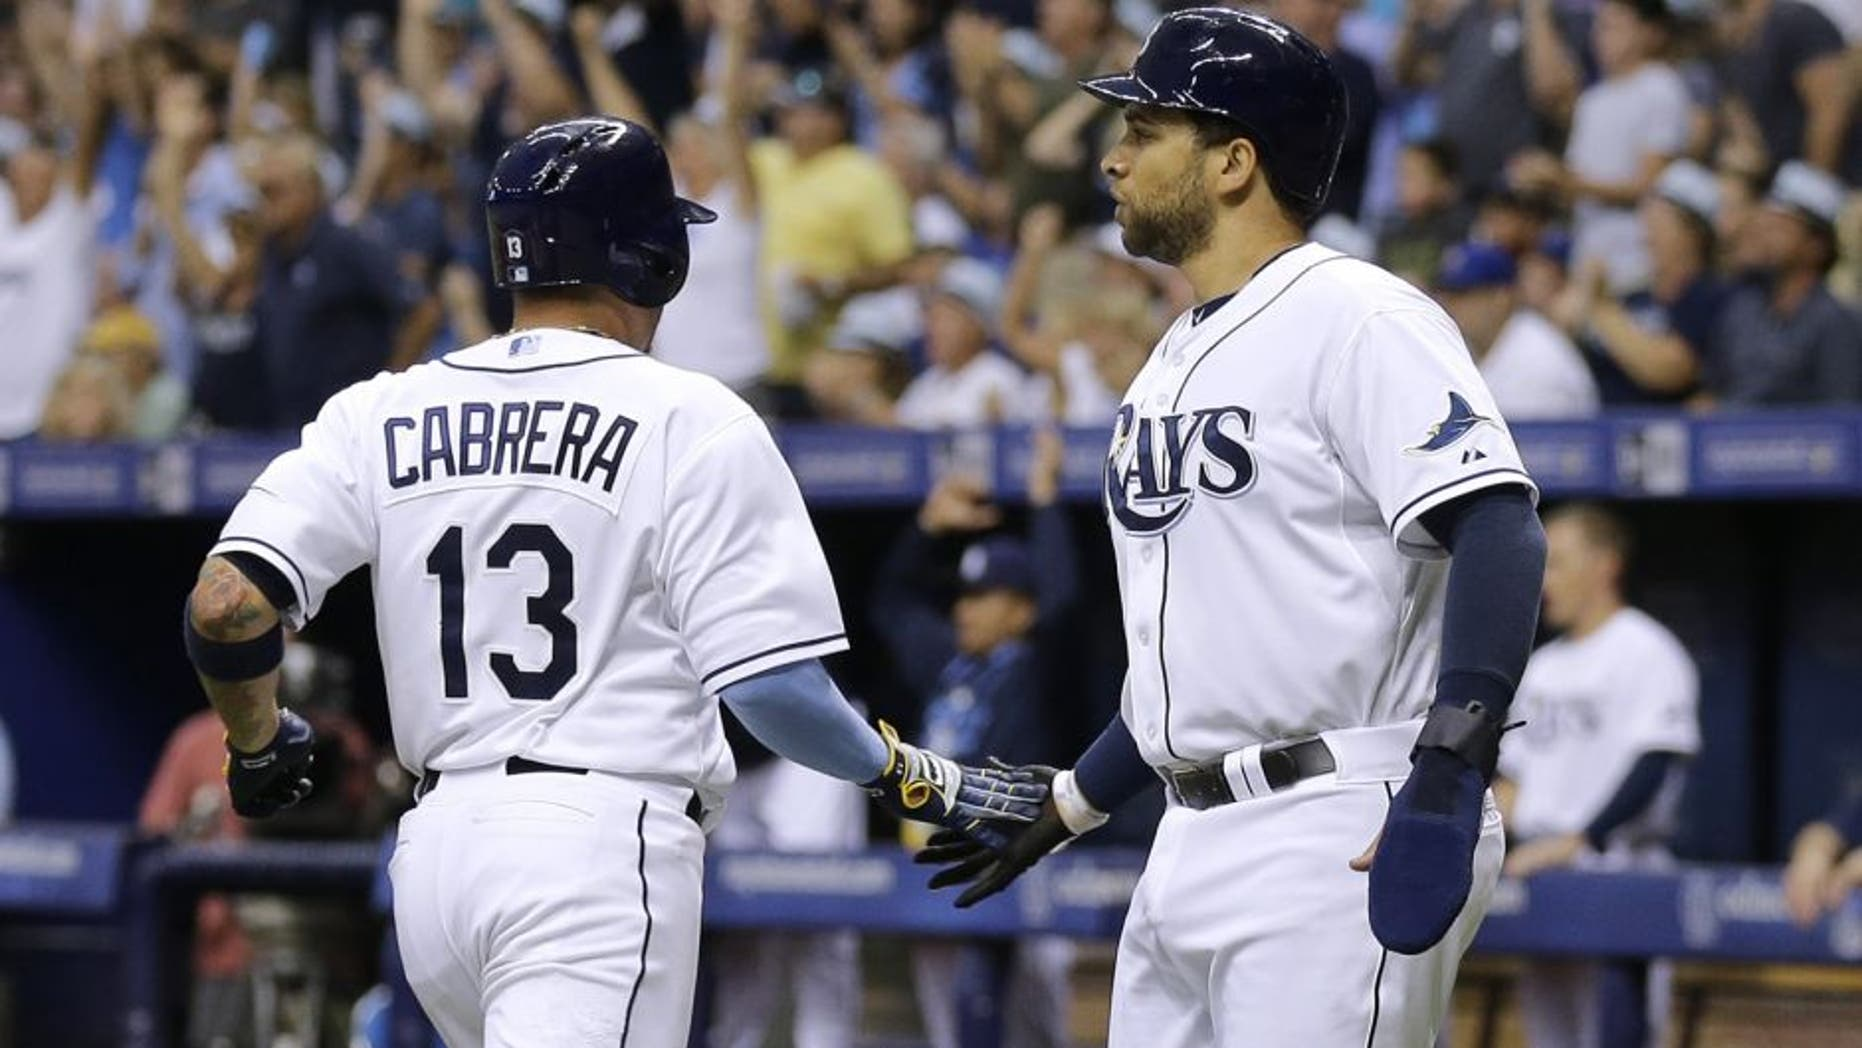 Tampa Bay Rays' James Loney and Asdrubal Cabrera (13) celebrate after scoring on a two-run single by Kevin Kiermaier off New York Mets starting pitcher Noah Syndergaard during the first inning of an interleague baseball game Saturday, Aug. 8, 2015, in St. Petersburg, Fla. (AP Photo/Chris O'Meara)